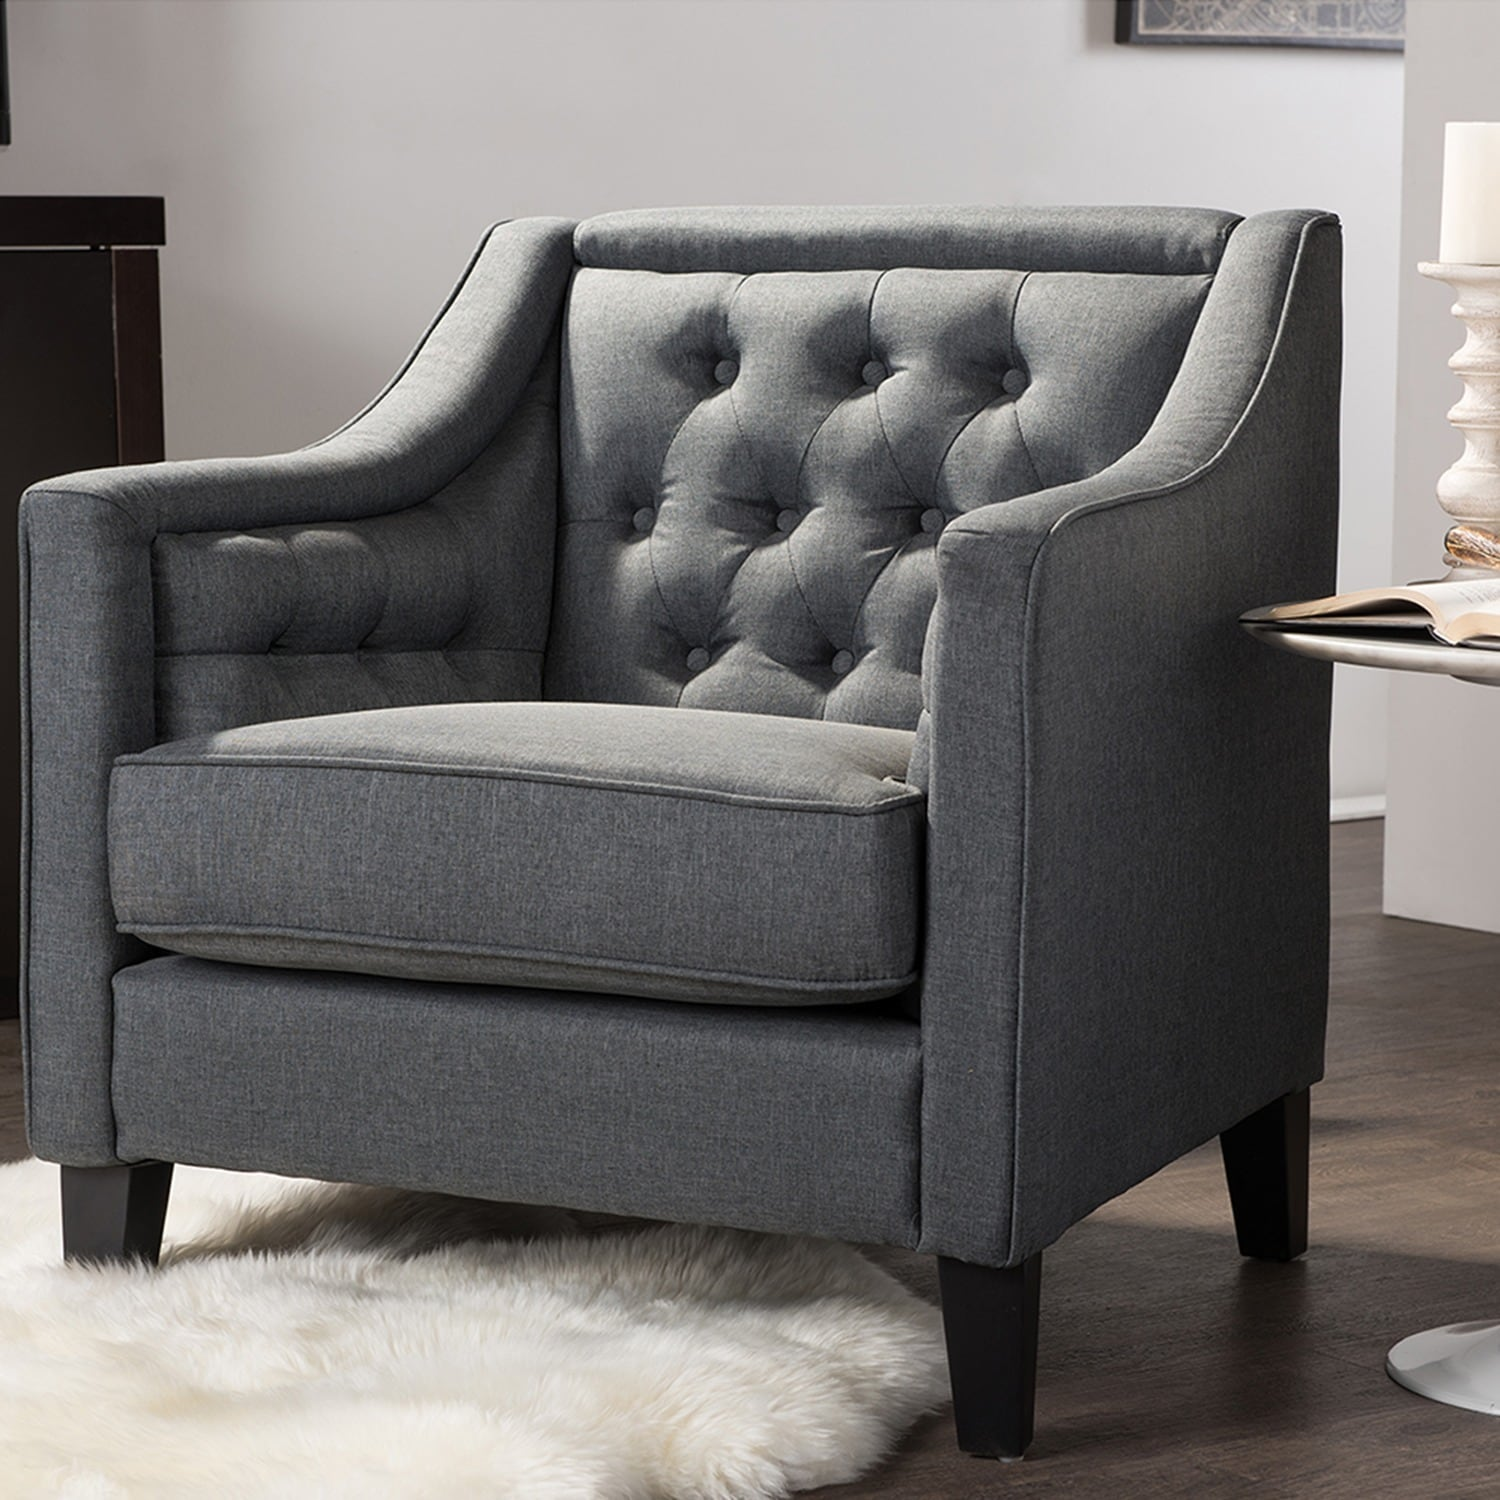 Enjoyable Vienna Classic Retro Modern Contemporary Grey Fabric Upholstered Button Tufted Armchair Pdpeps Interior Chair Design Pdpepsorg